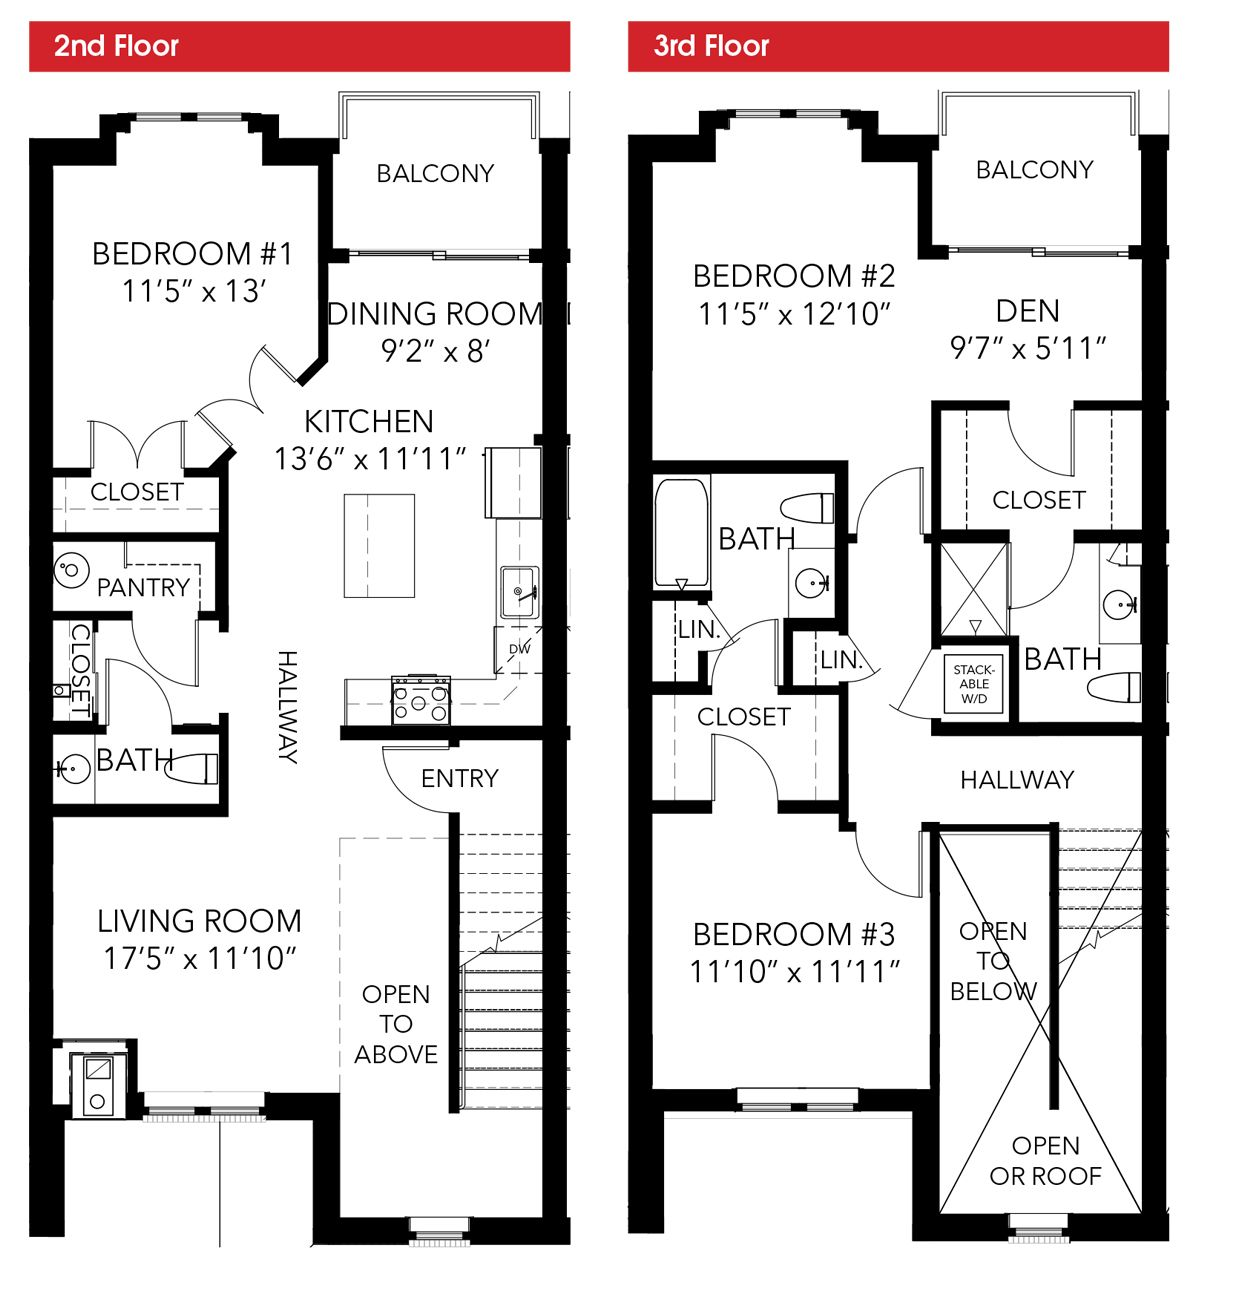 Oakbourne floor plan 3 bedroom 2 story leed certified for Three story townhouse floor plans